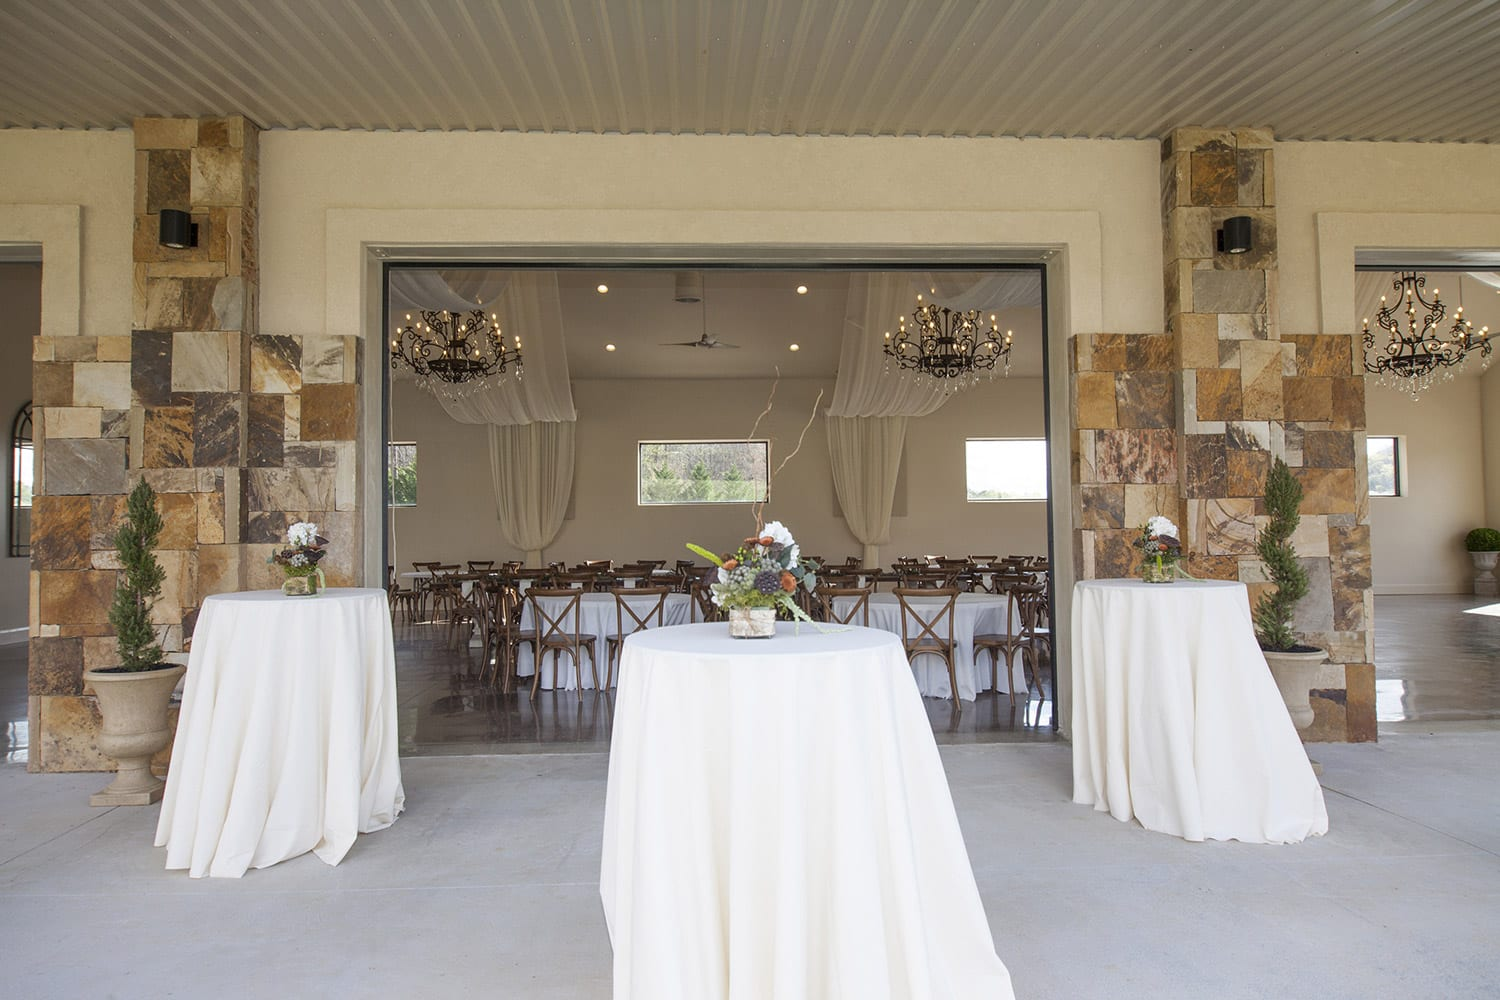 Reception hall porch with open windows and high boy tables